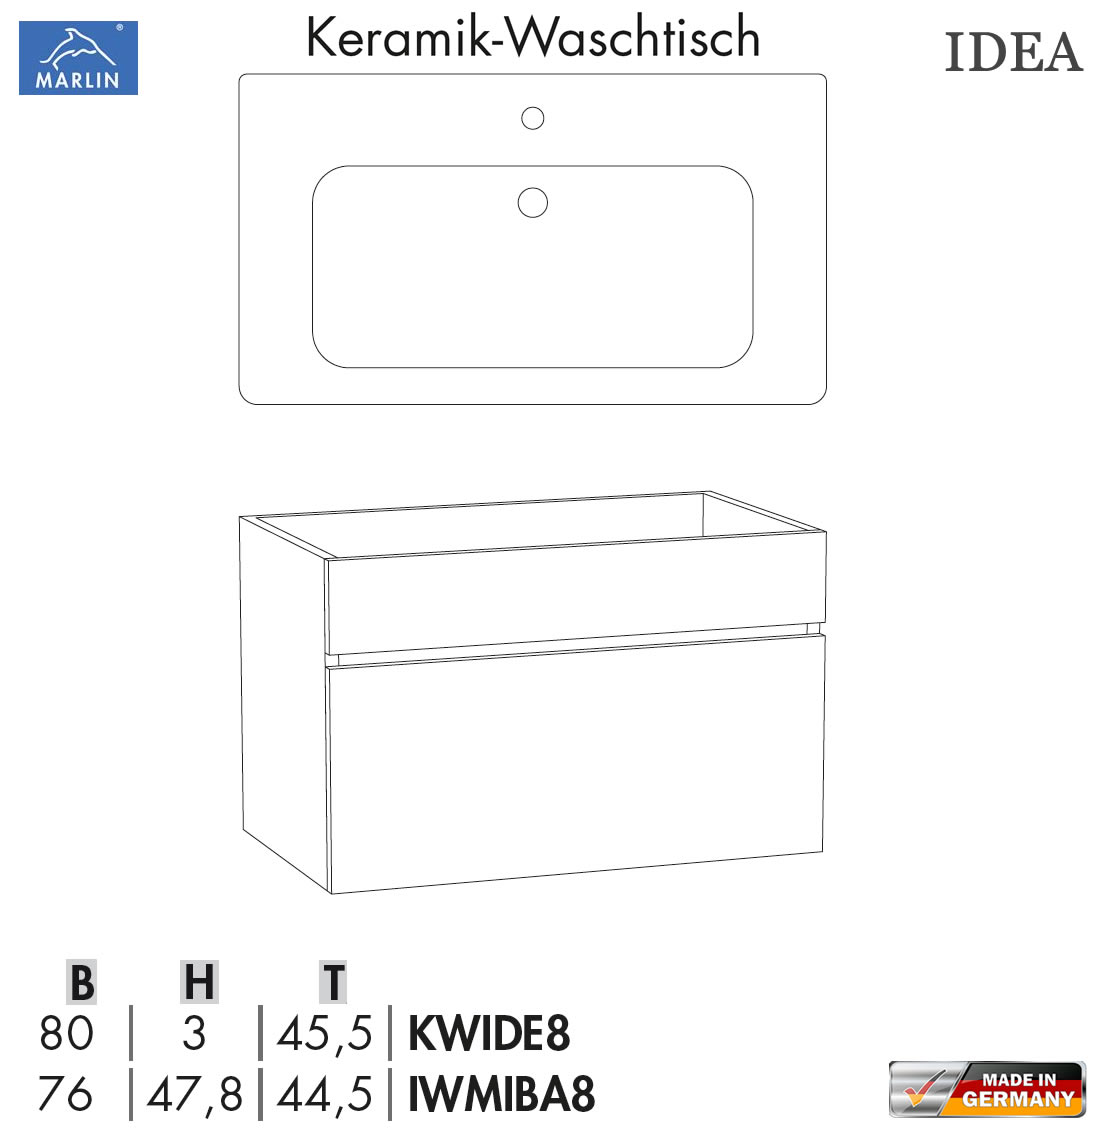 marlin idea waschtisch set mit 80 cm keramik waschtisch unterschrank v1 1 impuls home. Black Bedroom Furniture Sets. Home Design Ideas